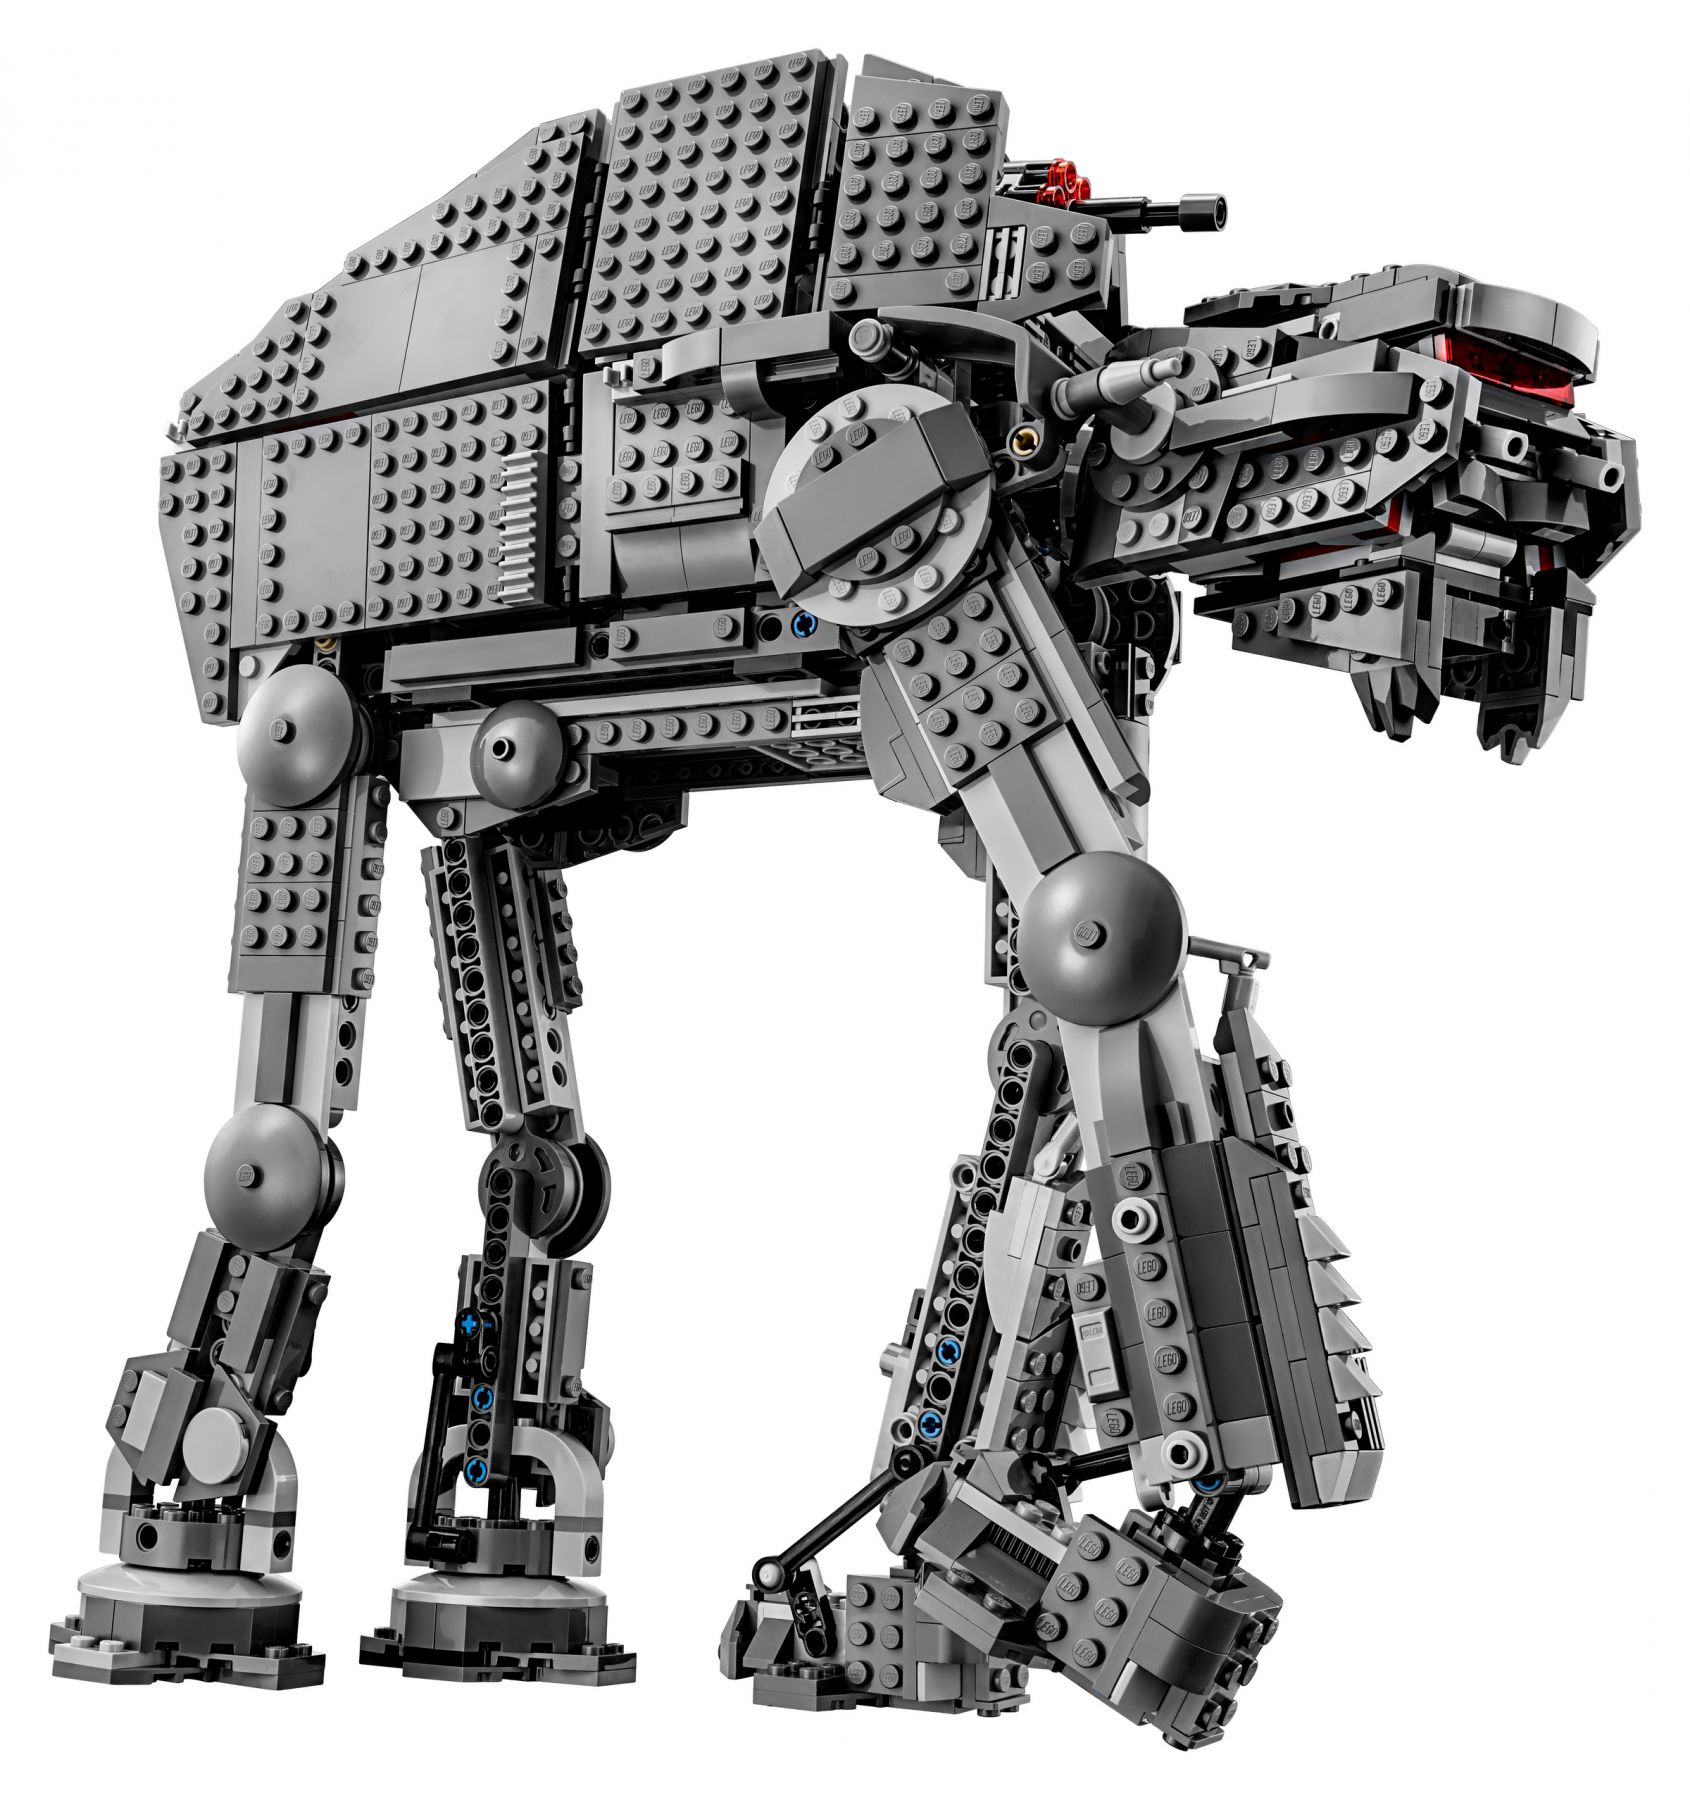 LEGO Star Wars 75189 First Order Heavy Assault Walker™ LEGO_75189_alt2.jpg